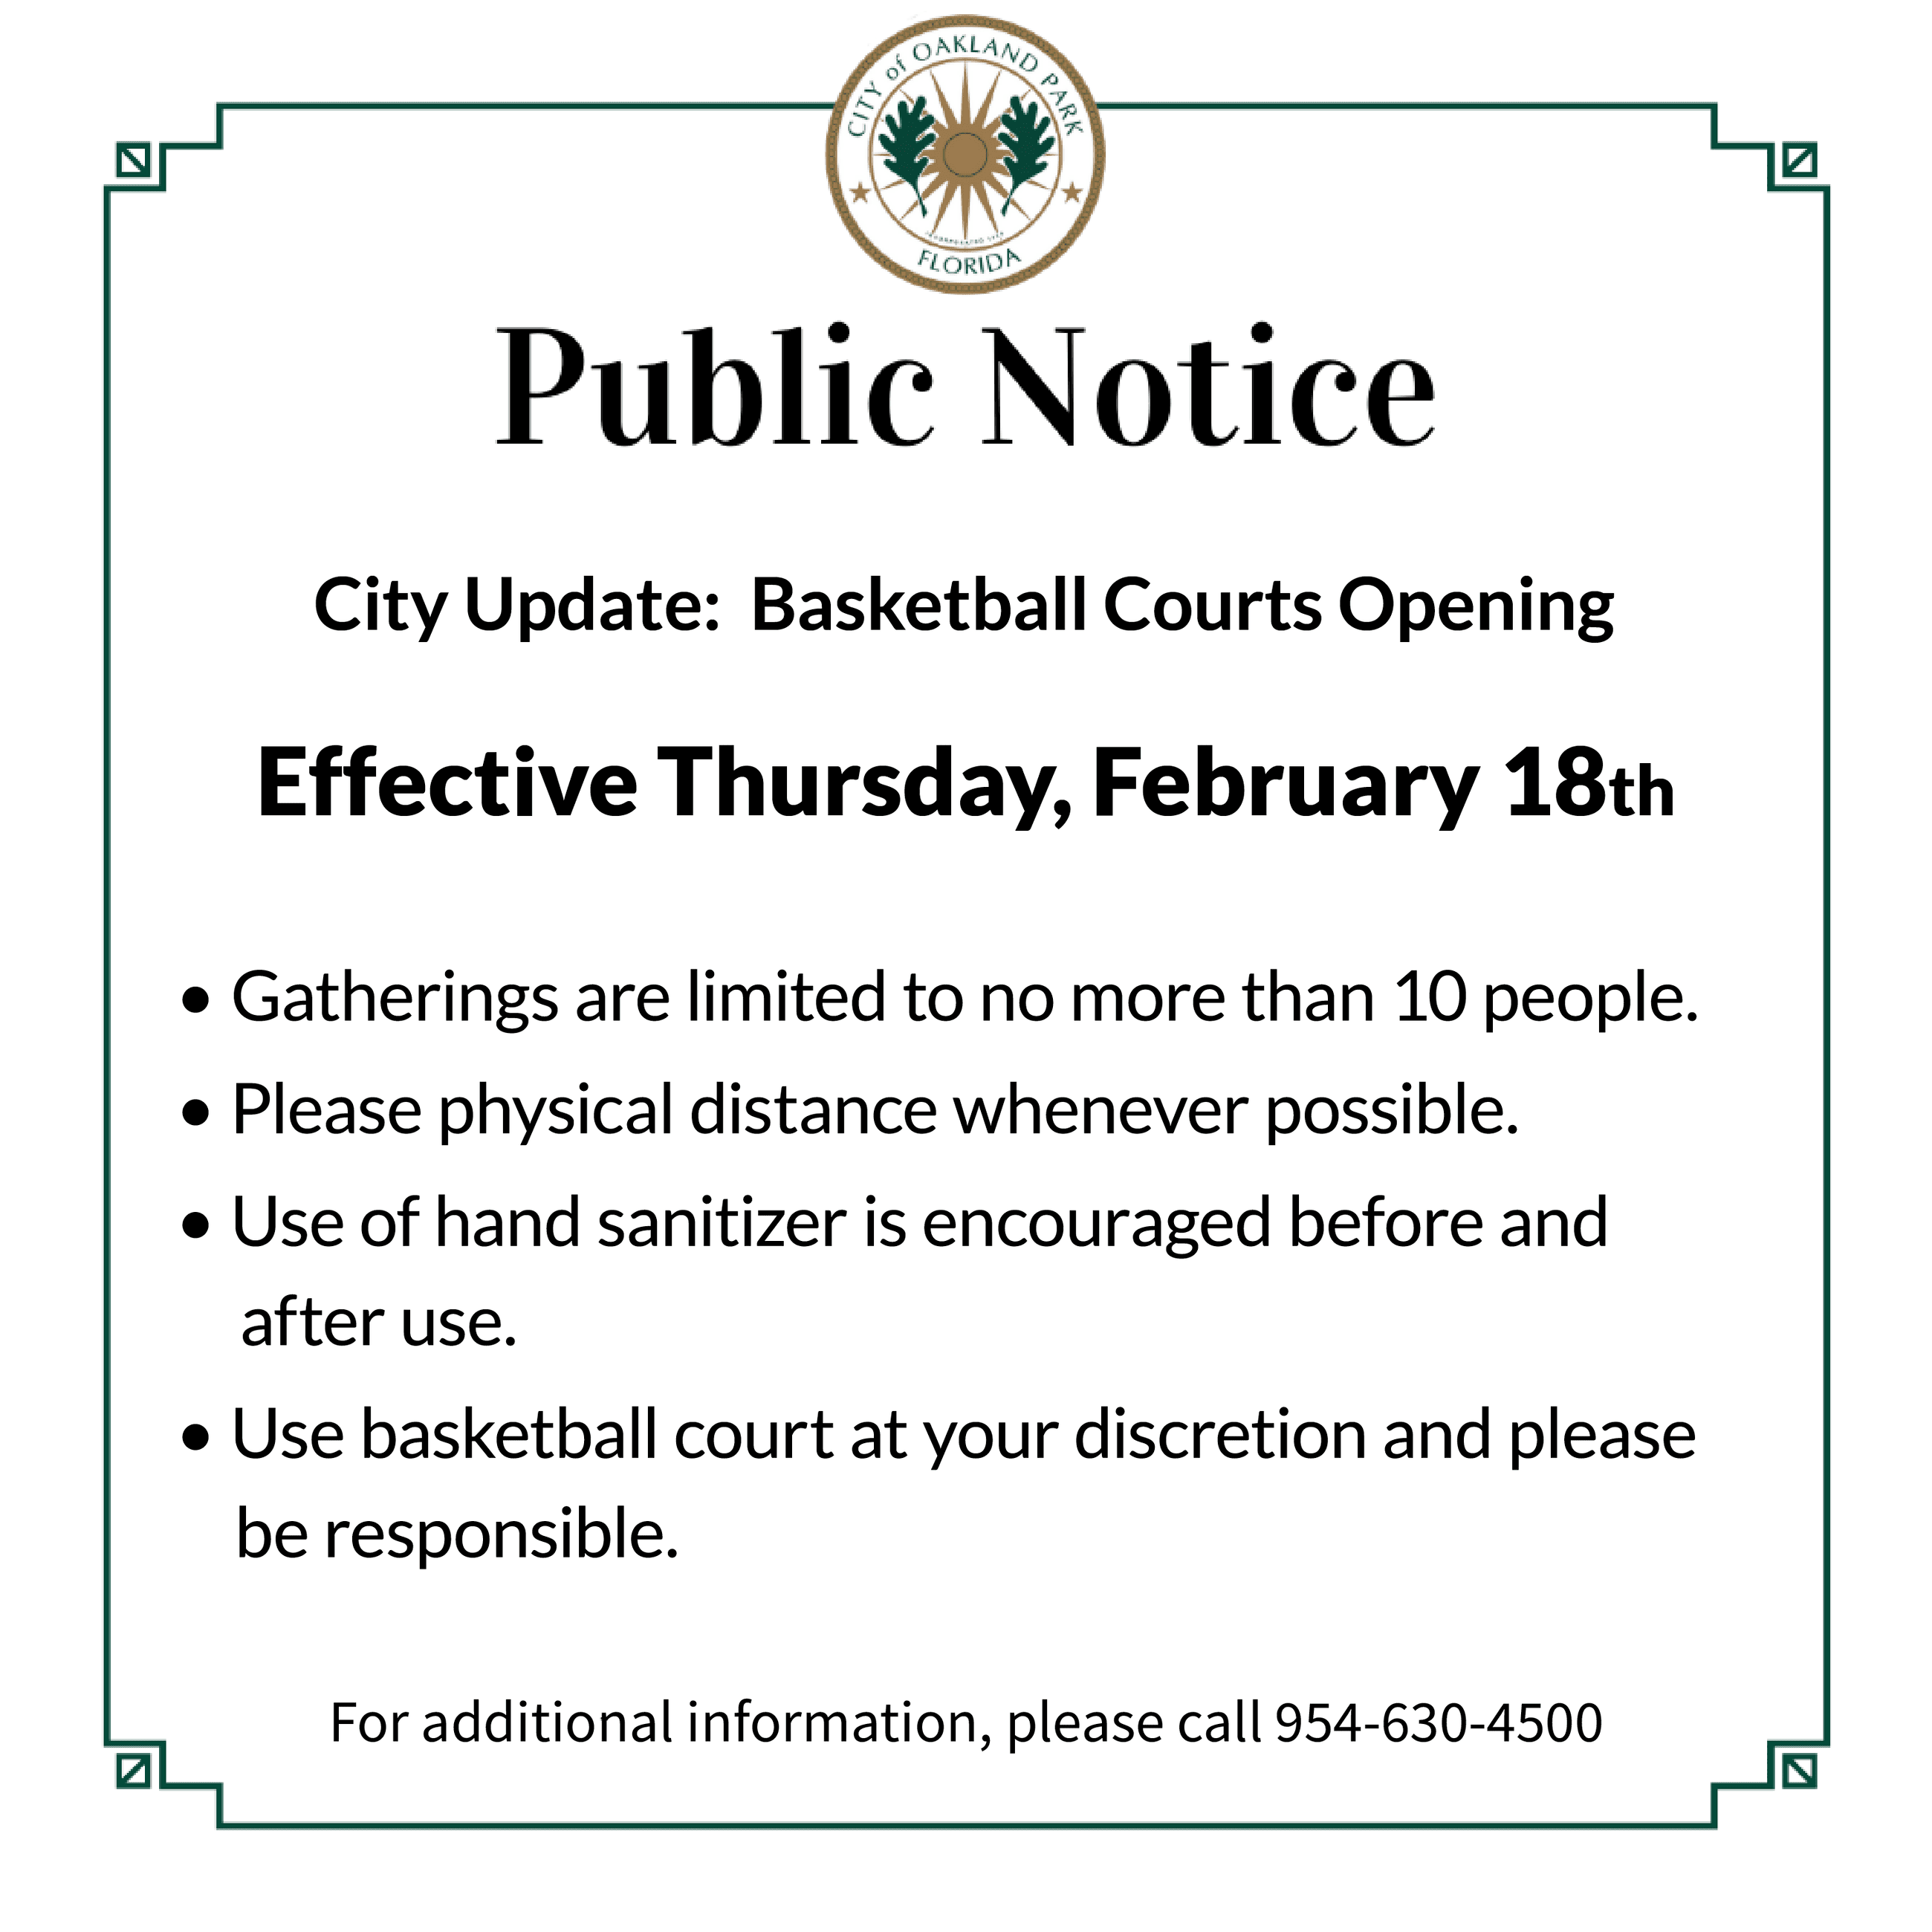 Public Notice - Basketball Courts Opening